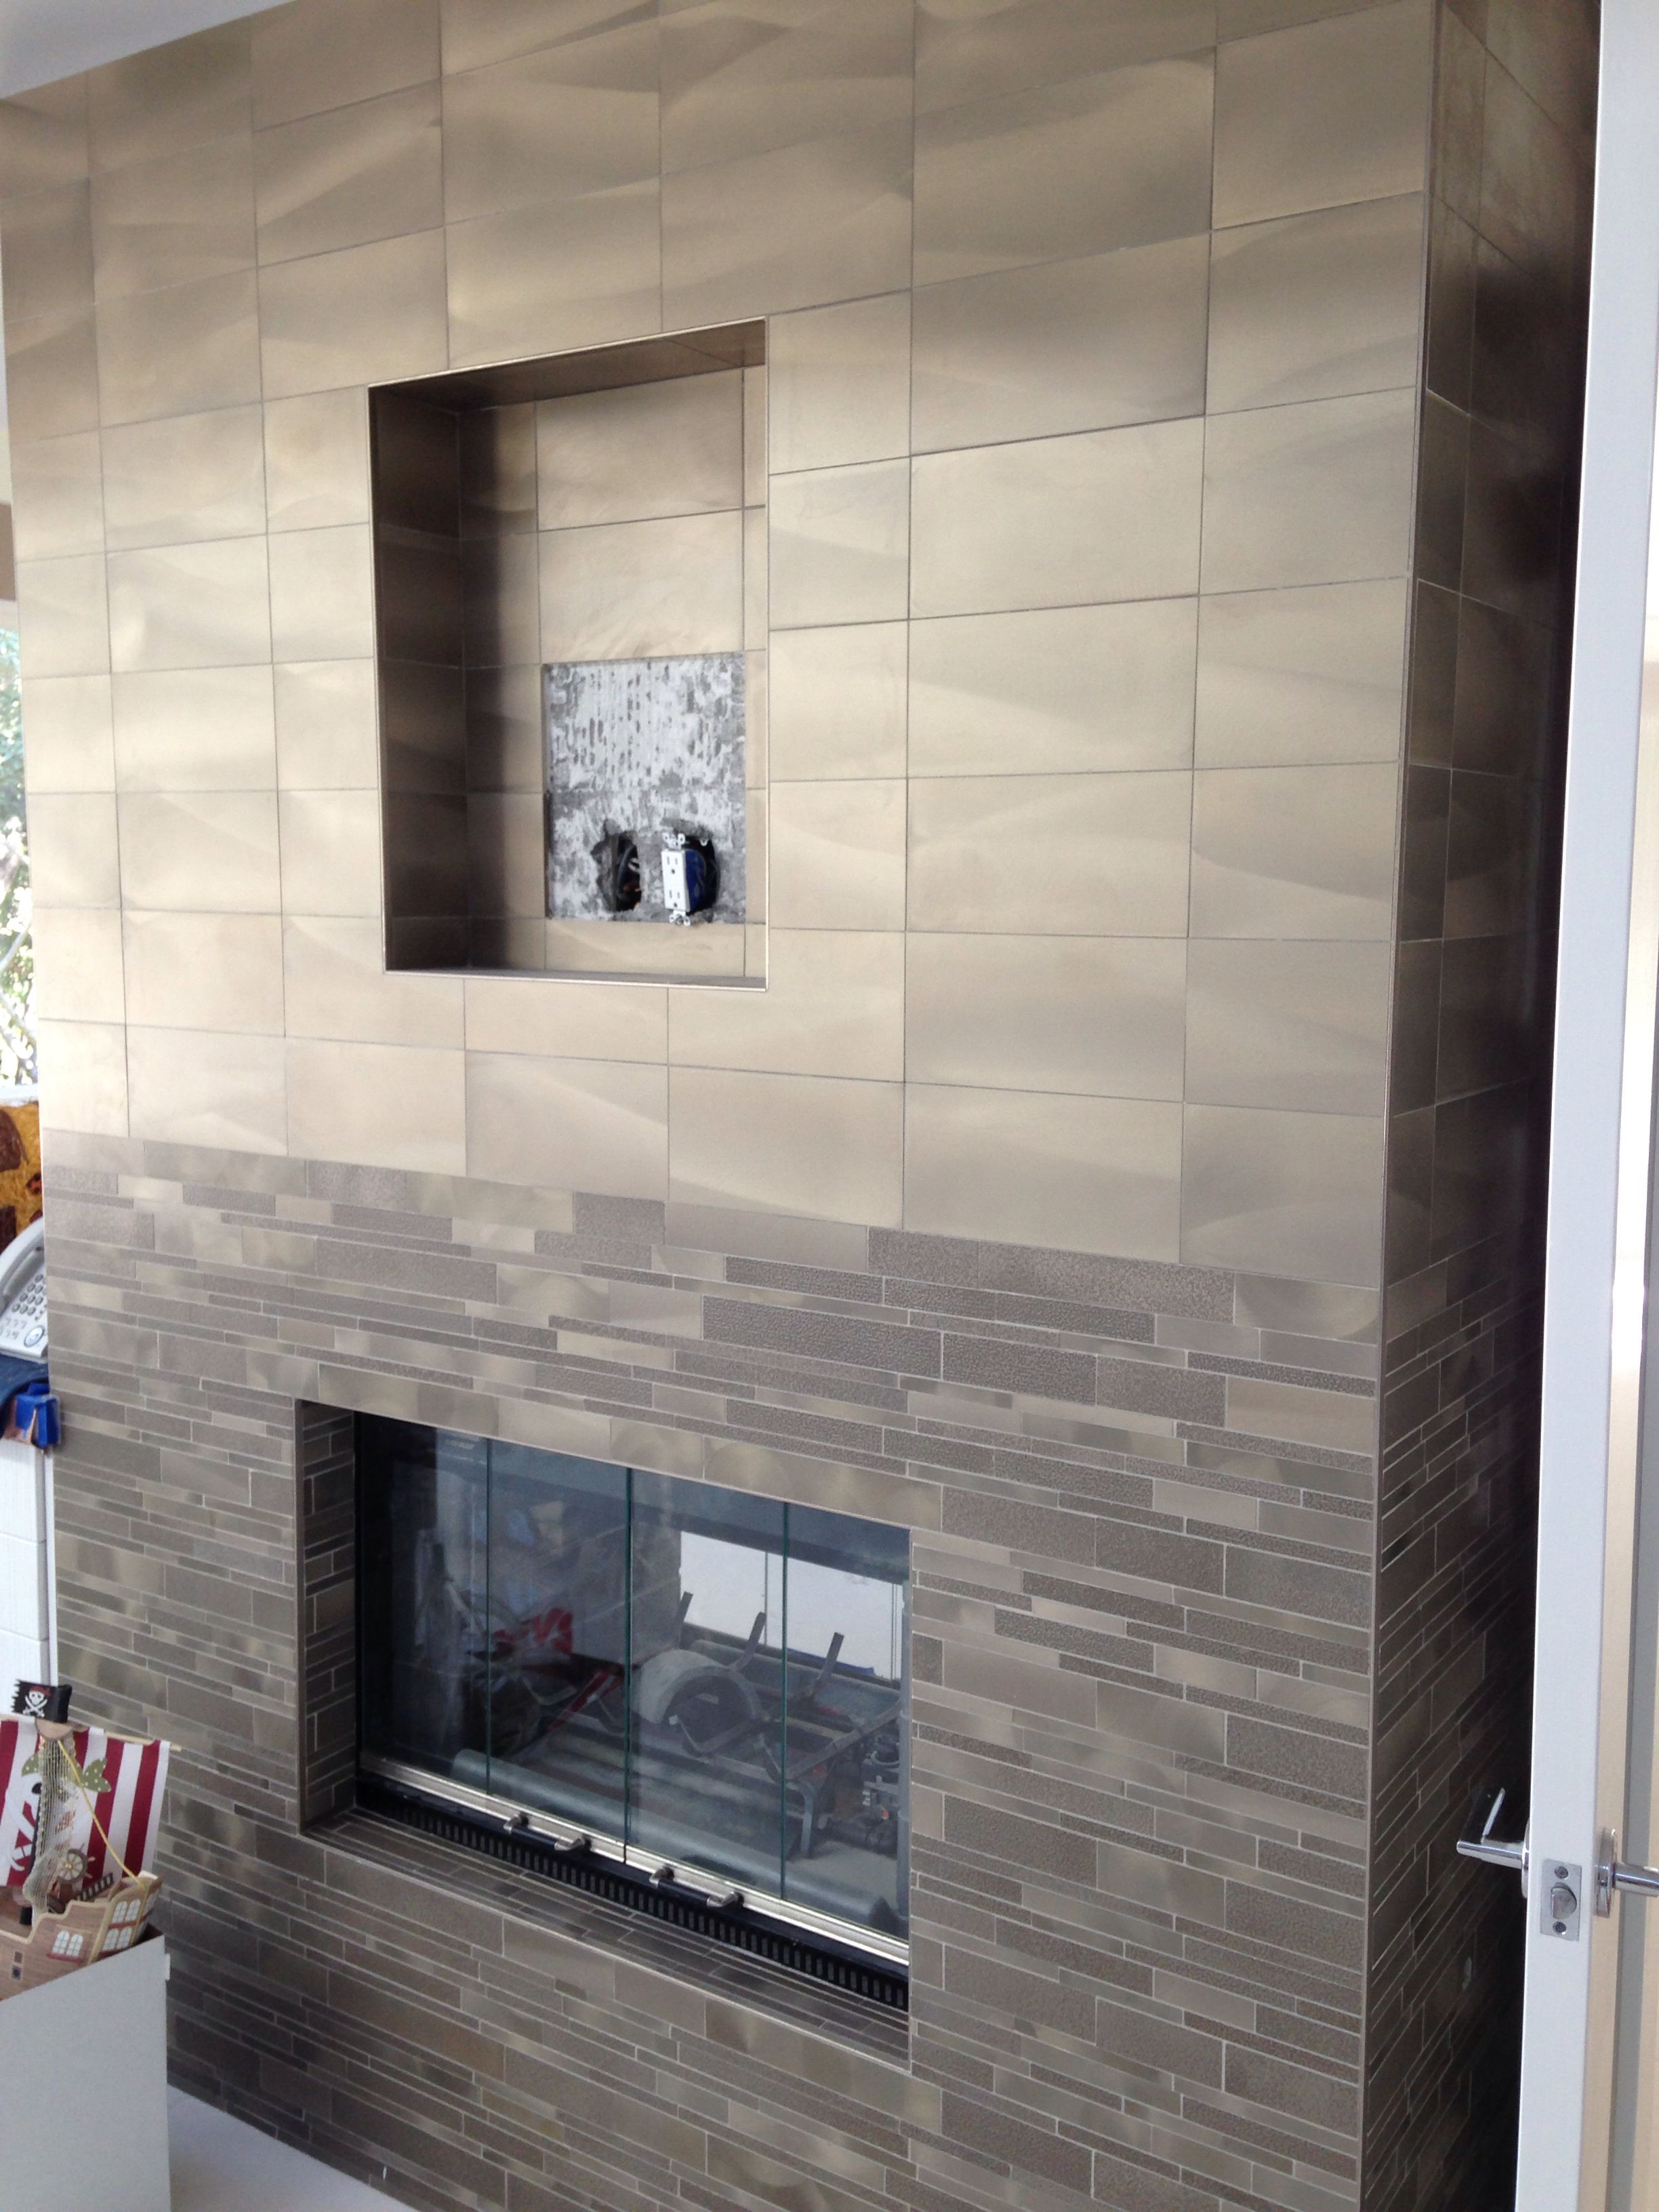 Metaluxe Porcelain Tile Www Imptile Com With Images Interior